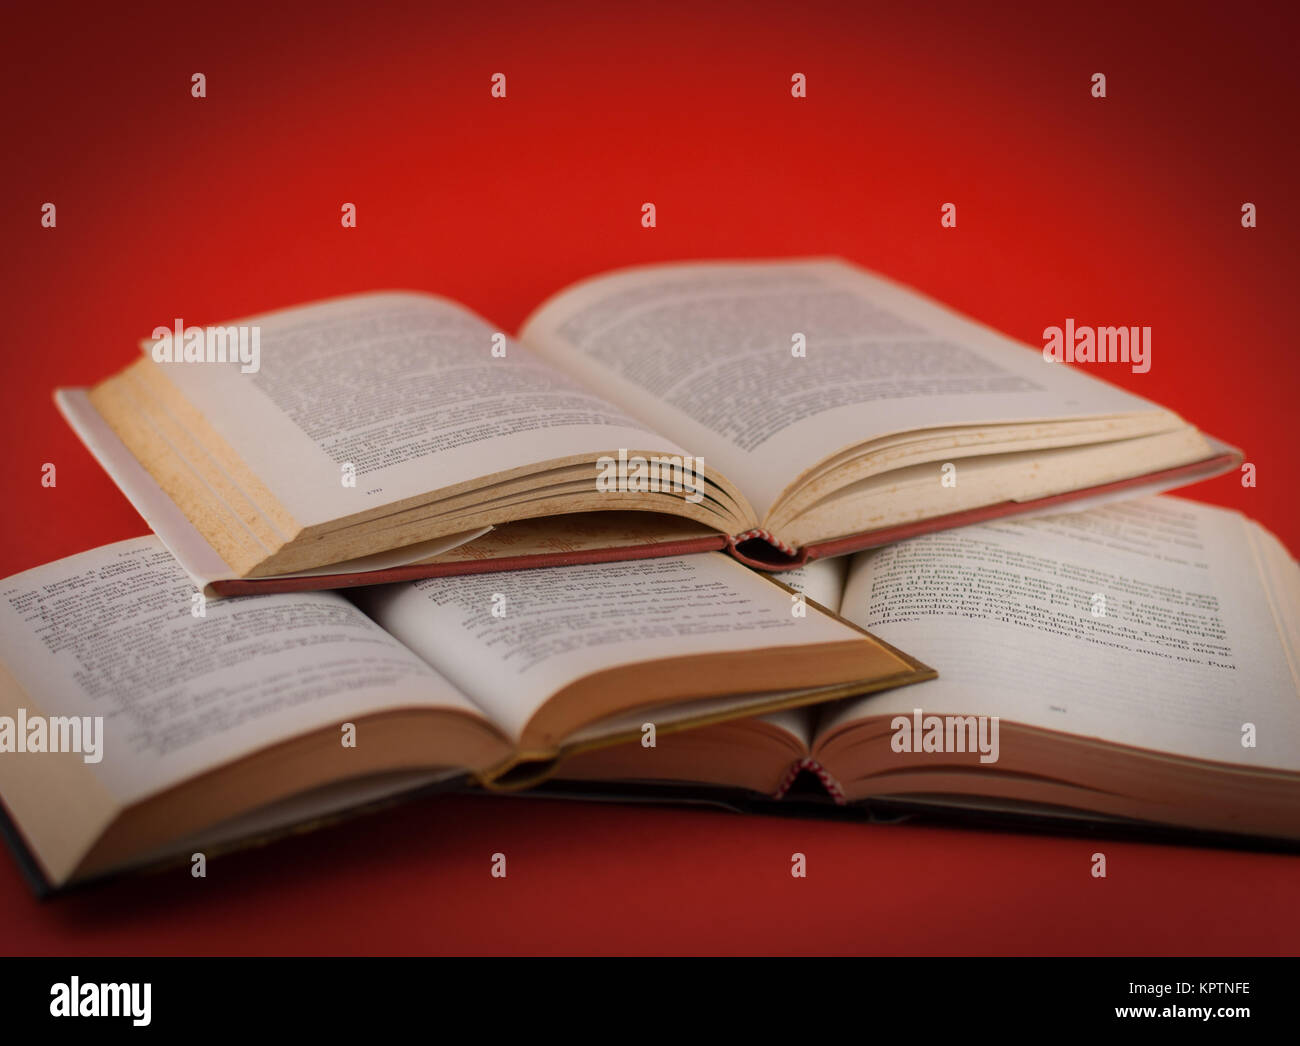 closeup of open books on colored background Stock Photo